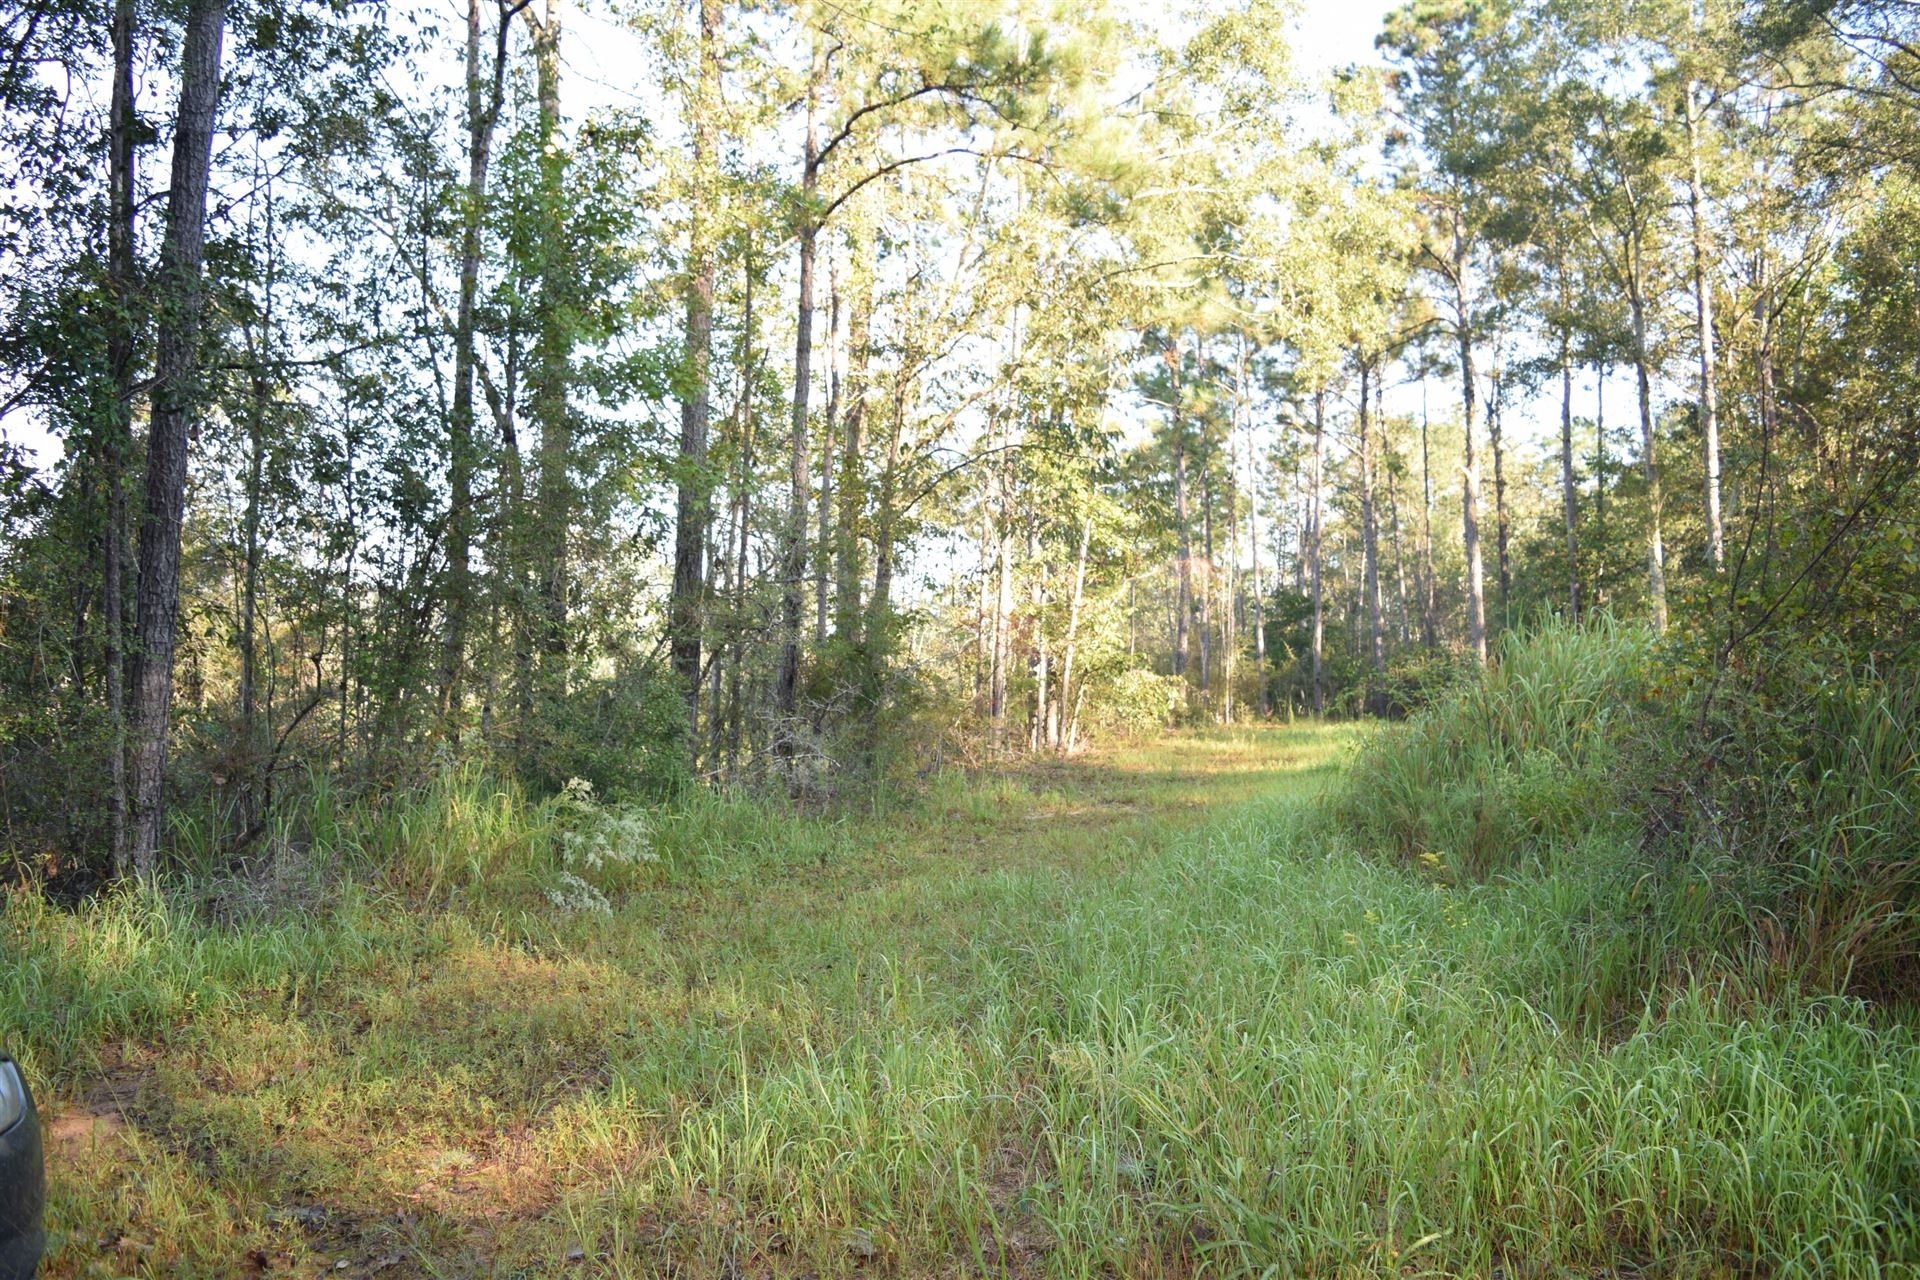 Photo of 20.9 Acres Lydia Gibson Dr., Lucedale, MS 39452 (MLS # 127177)